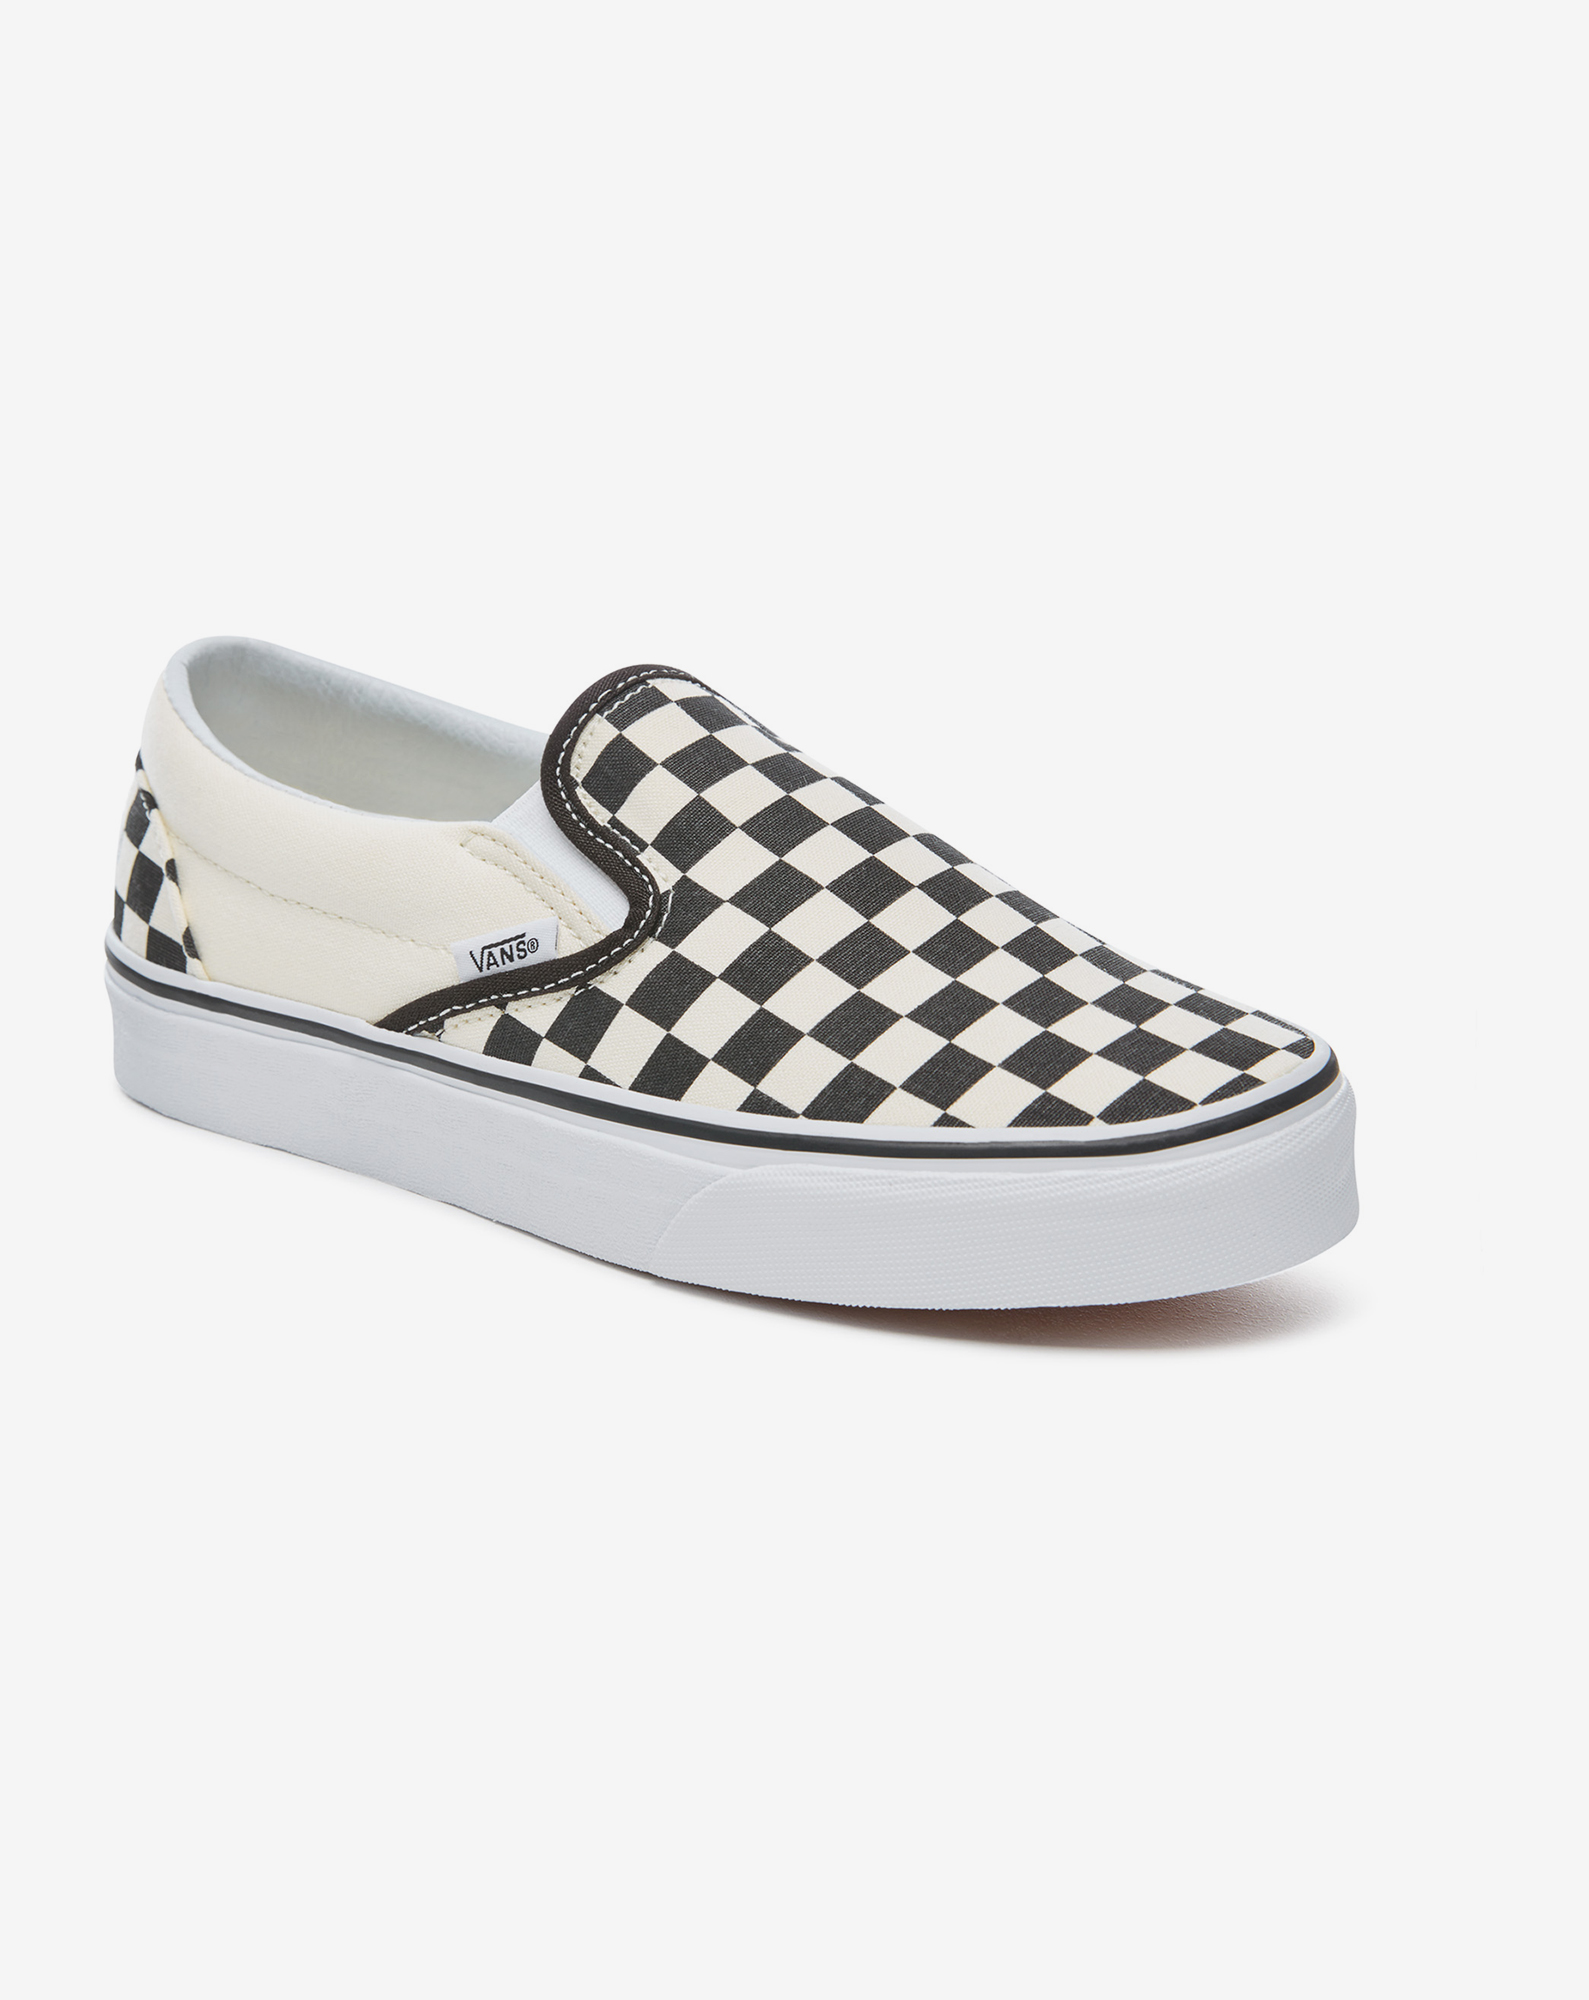 detail UA CLASSIC SLIP-ON Blk WhtChckerbo